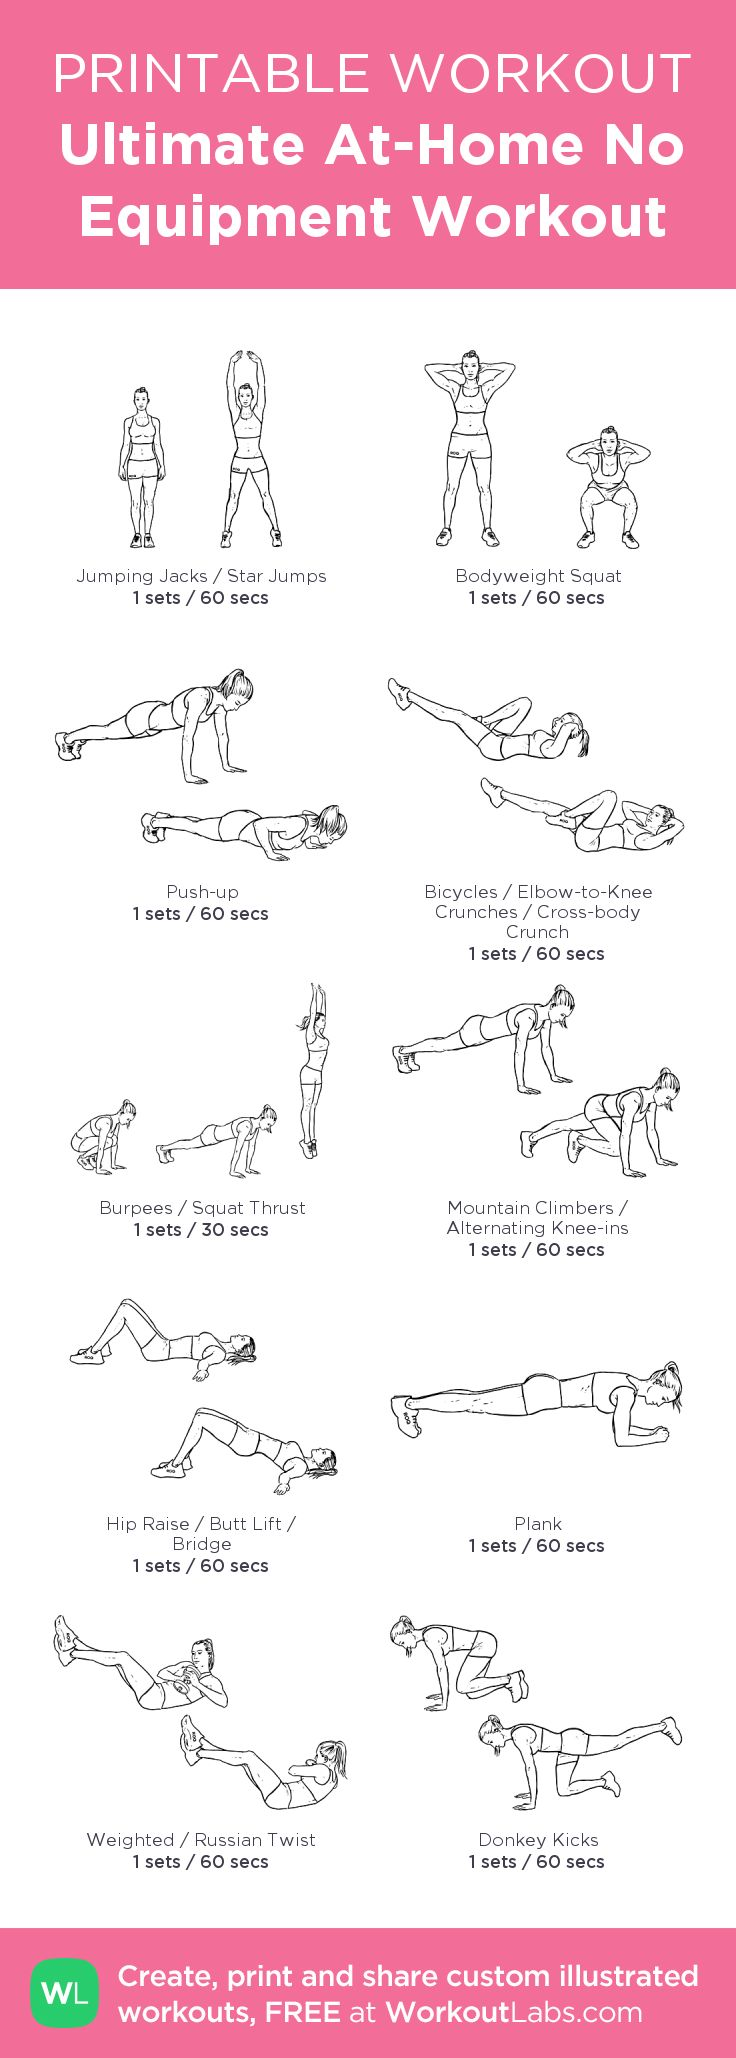 Ultimate At-Home No Equipment Workout –my custom workout created at WorkoutLabs.com • Click through to download as printable PDF! #customworkout